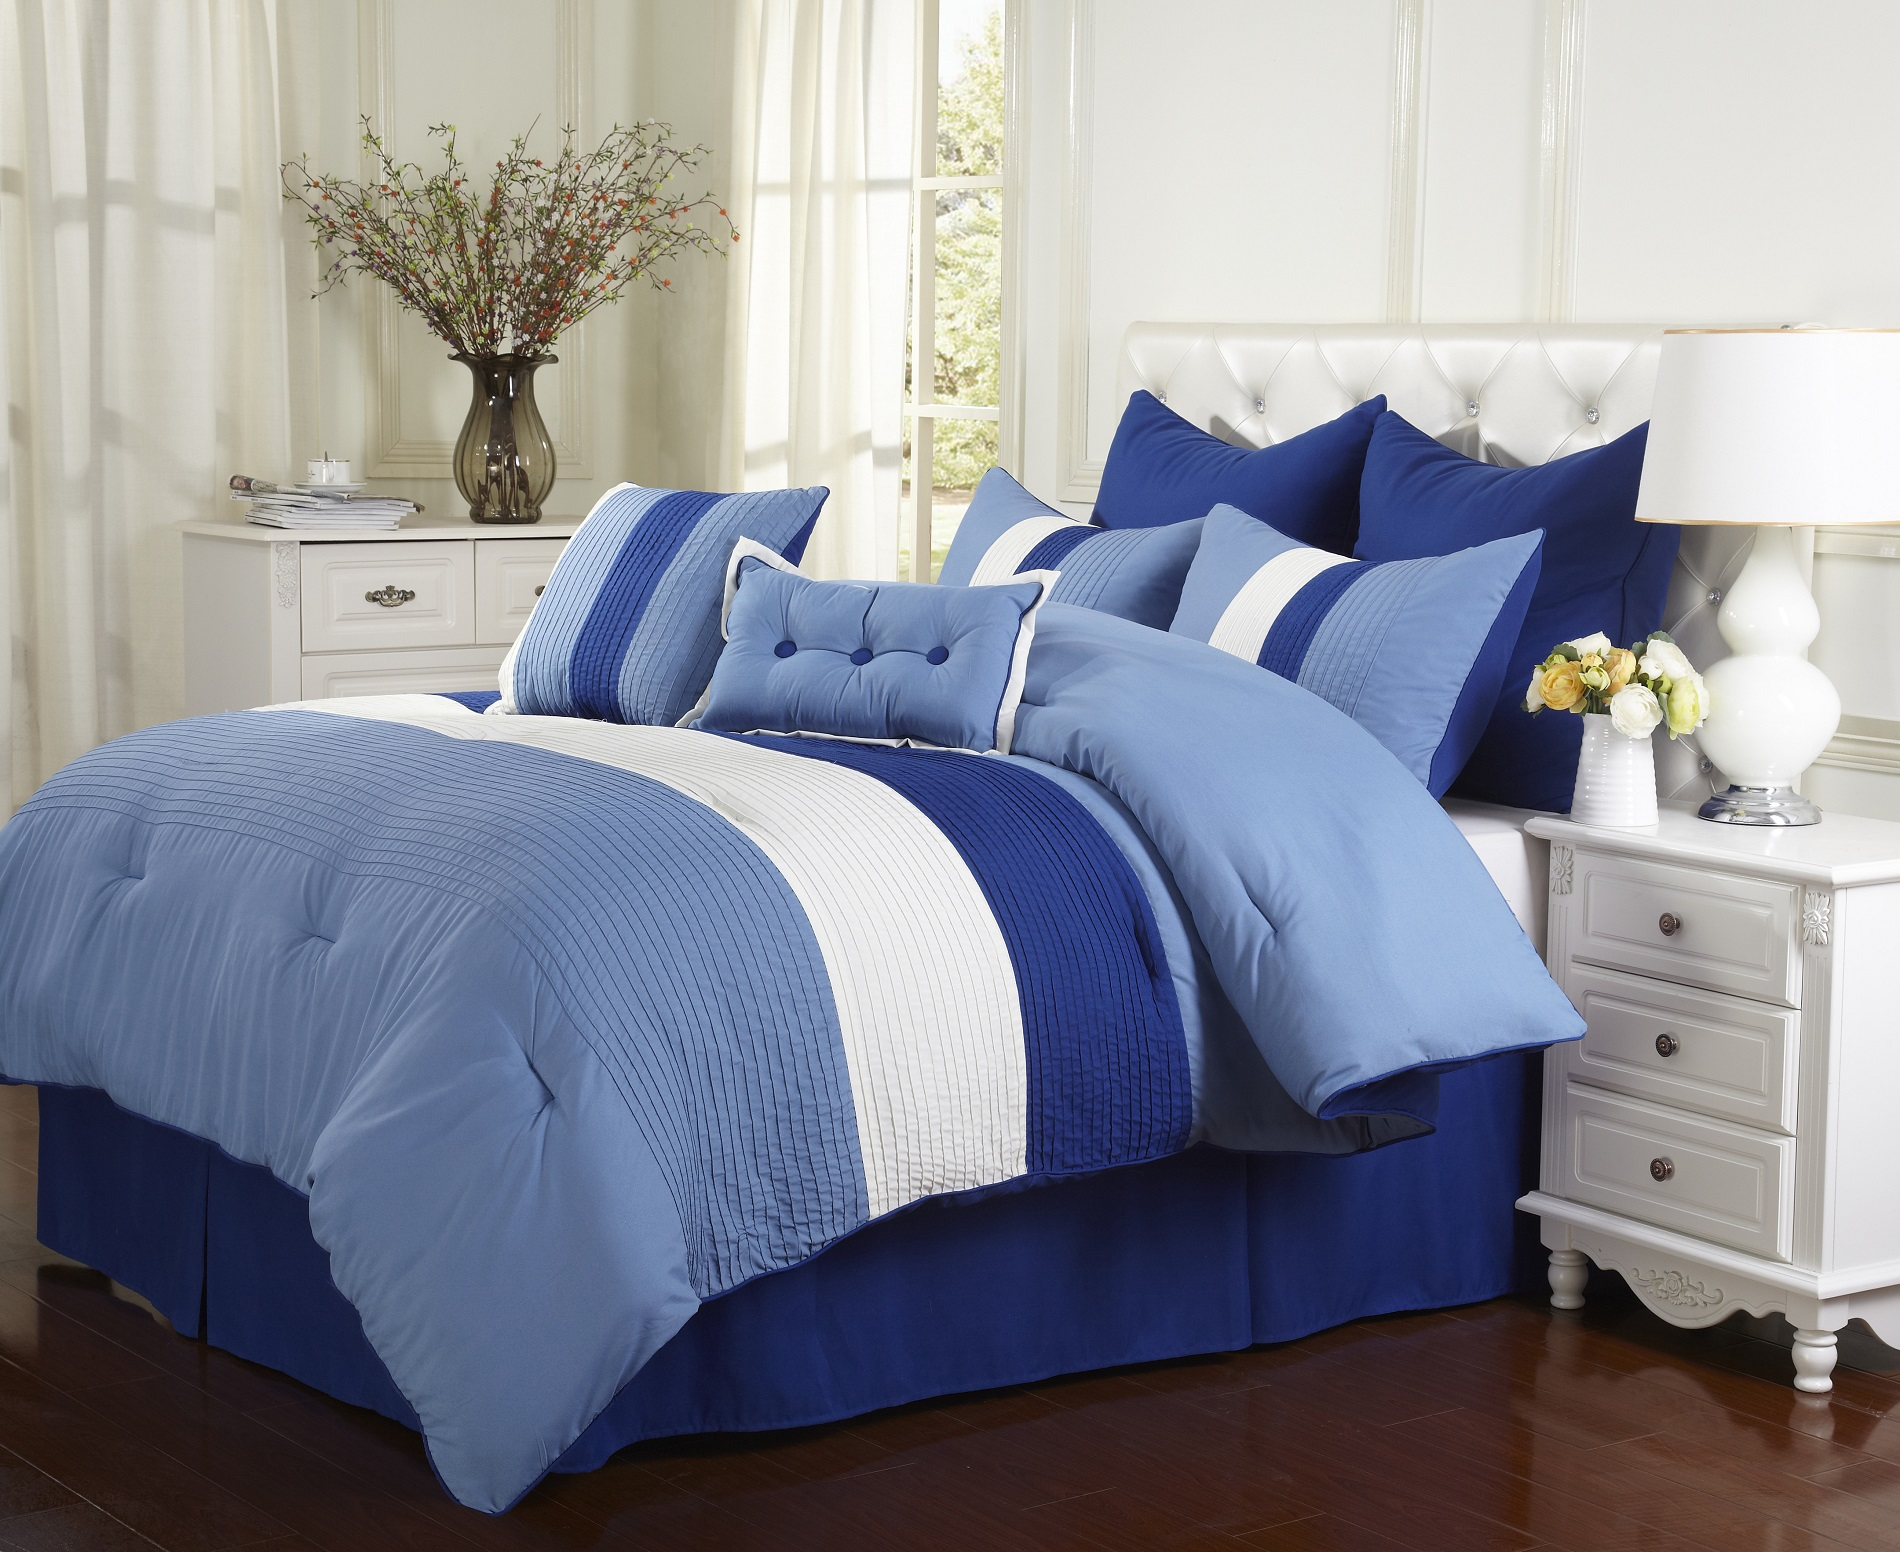 florence 8 piece comforter set with shams bed skirt and pillow 4 rh ebay co uk